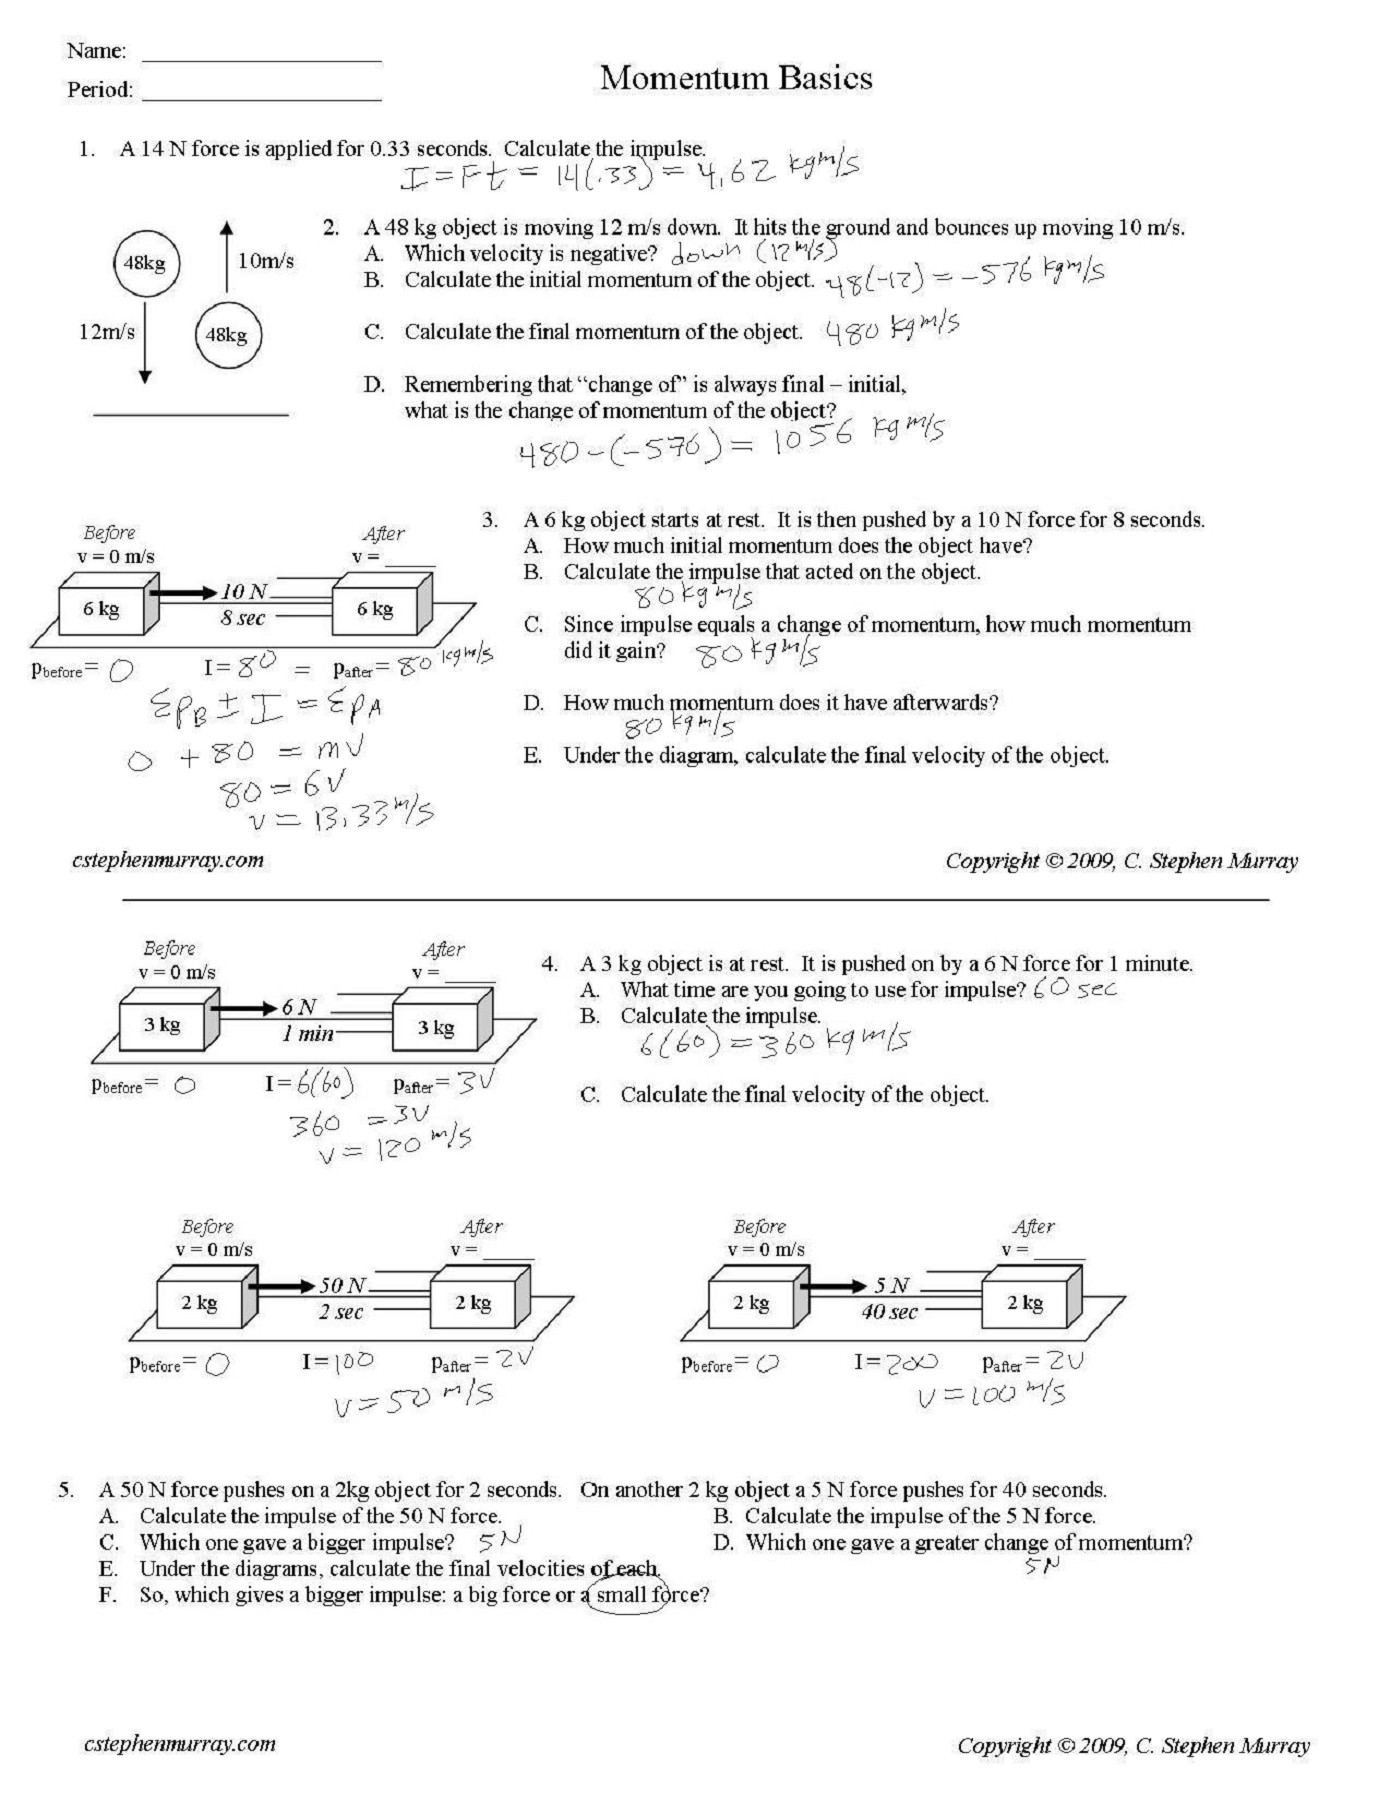 Printables Of The Law Of Conservation Of Momentum Worksheet Answers Cstephenmurray